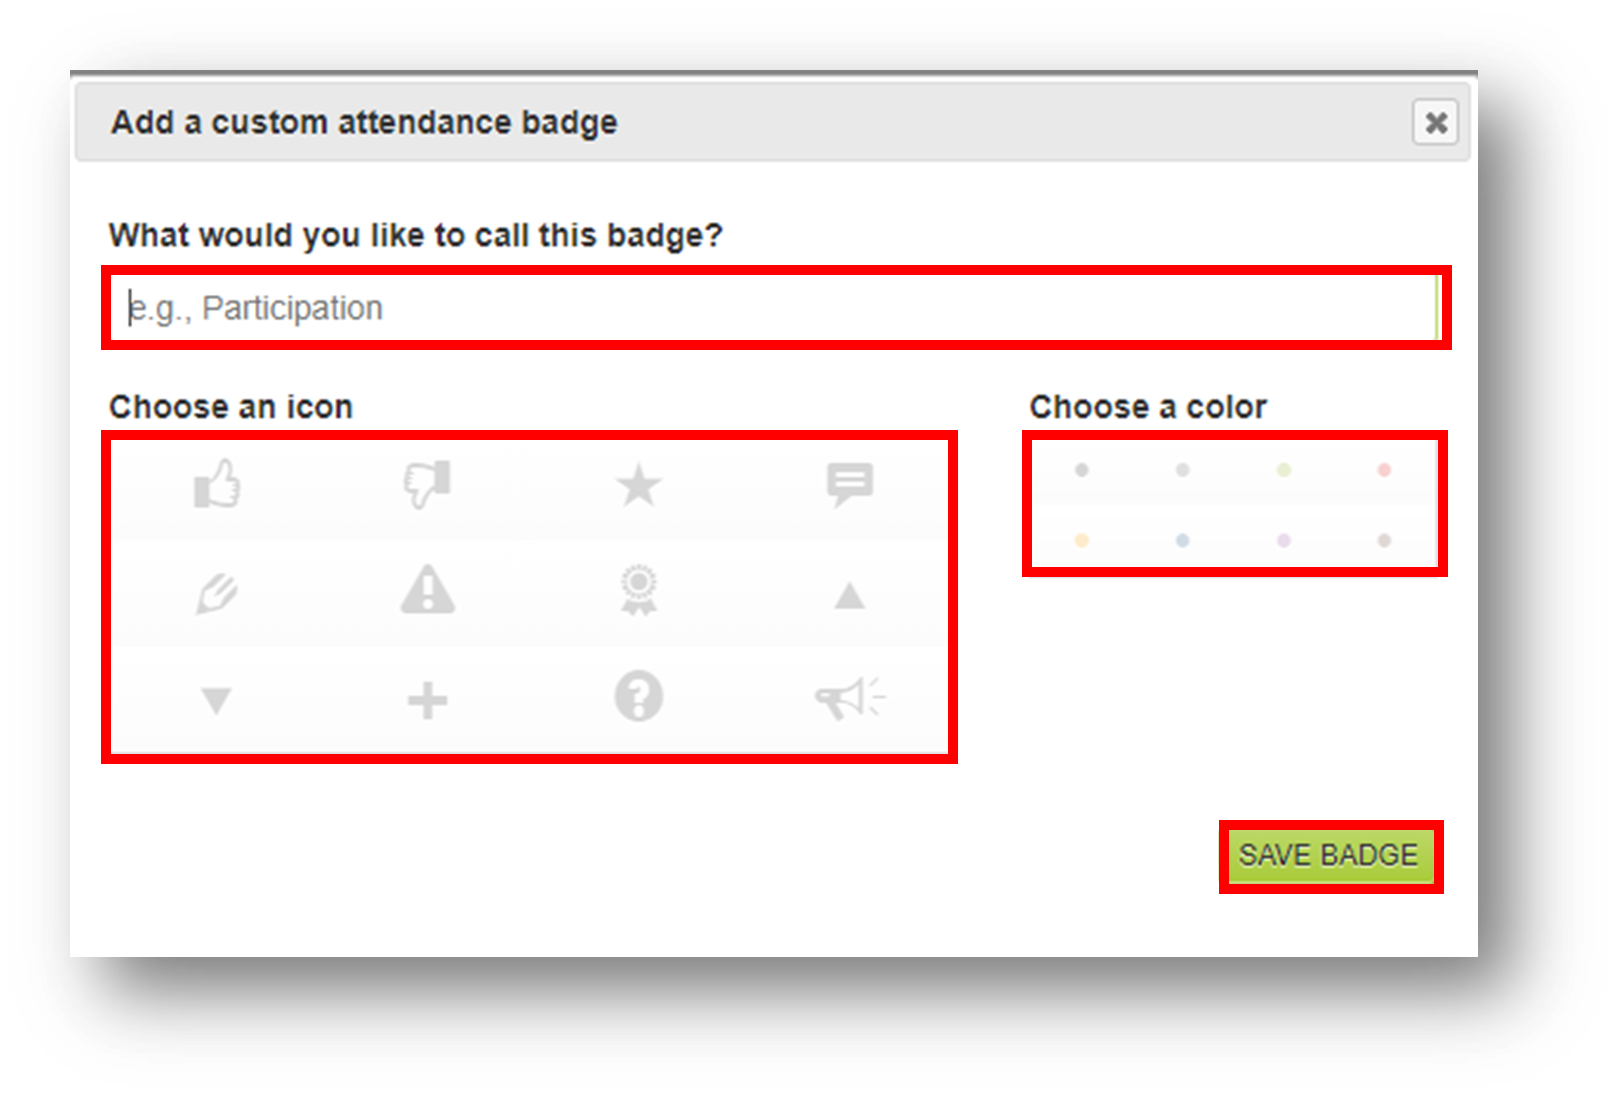 The text field for entering the badge title, the badge icon selection box, the badge color selection box, and the save badge button